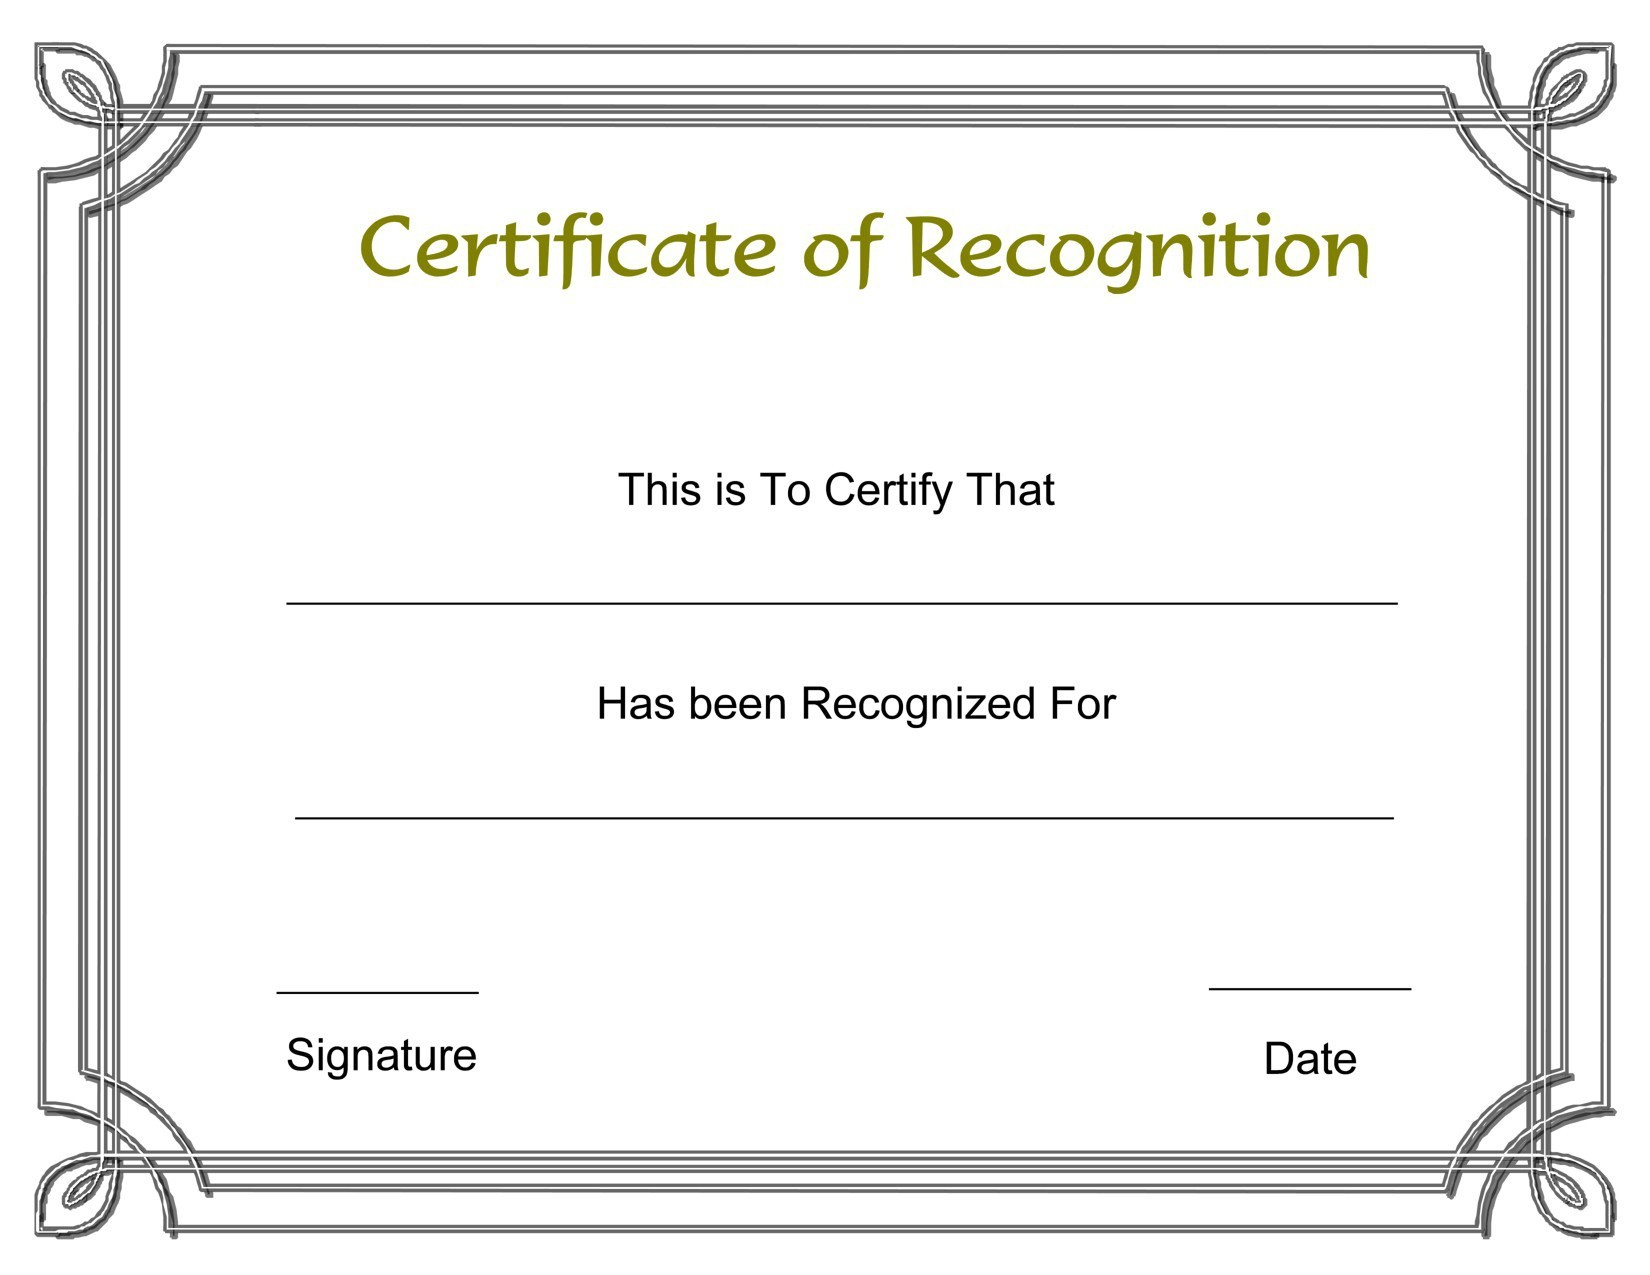 New Certificate Of Recognition Template | Www.pantry-Magic - Free Printable School Certificates Templates